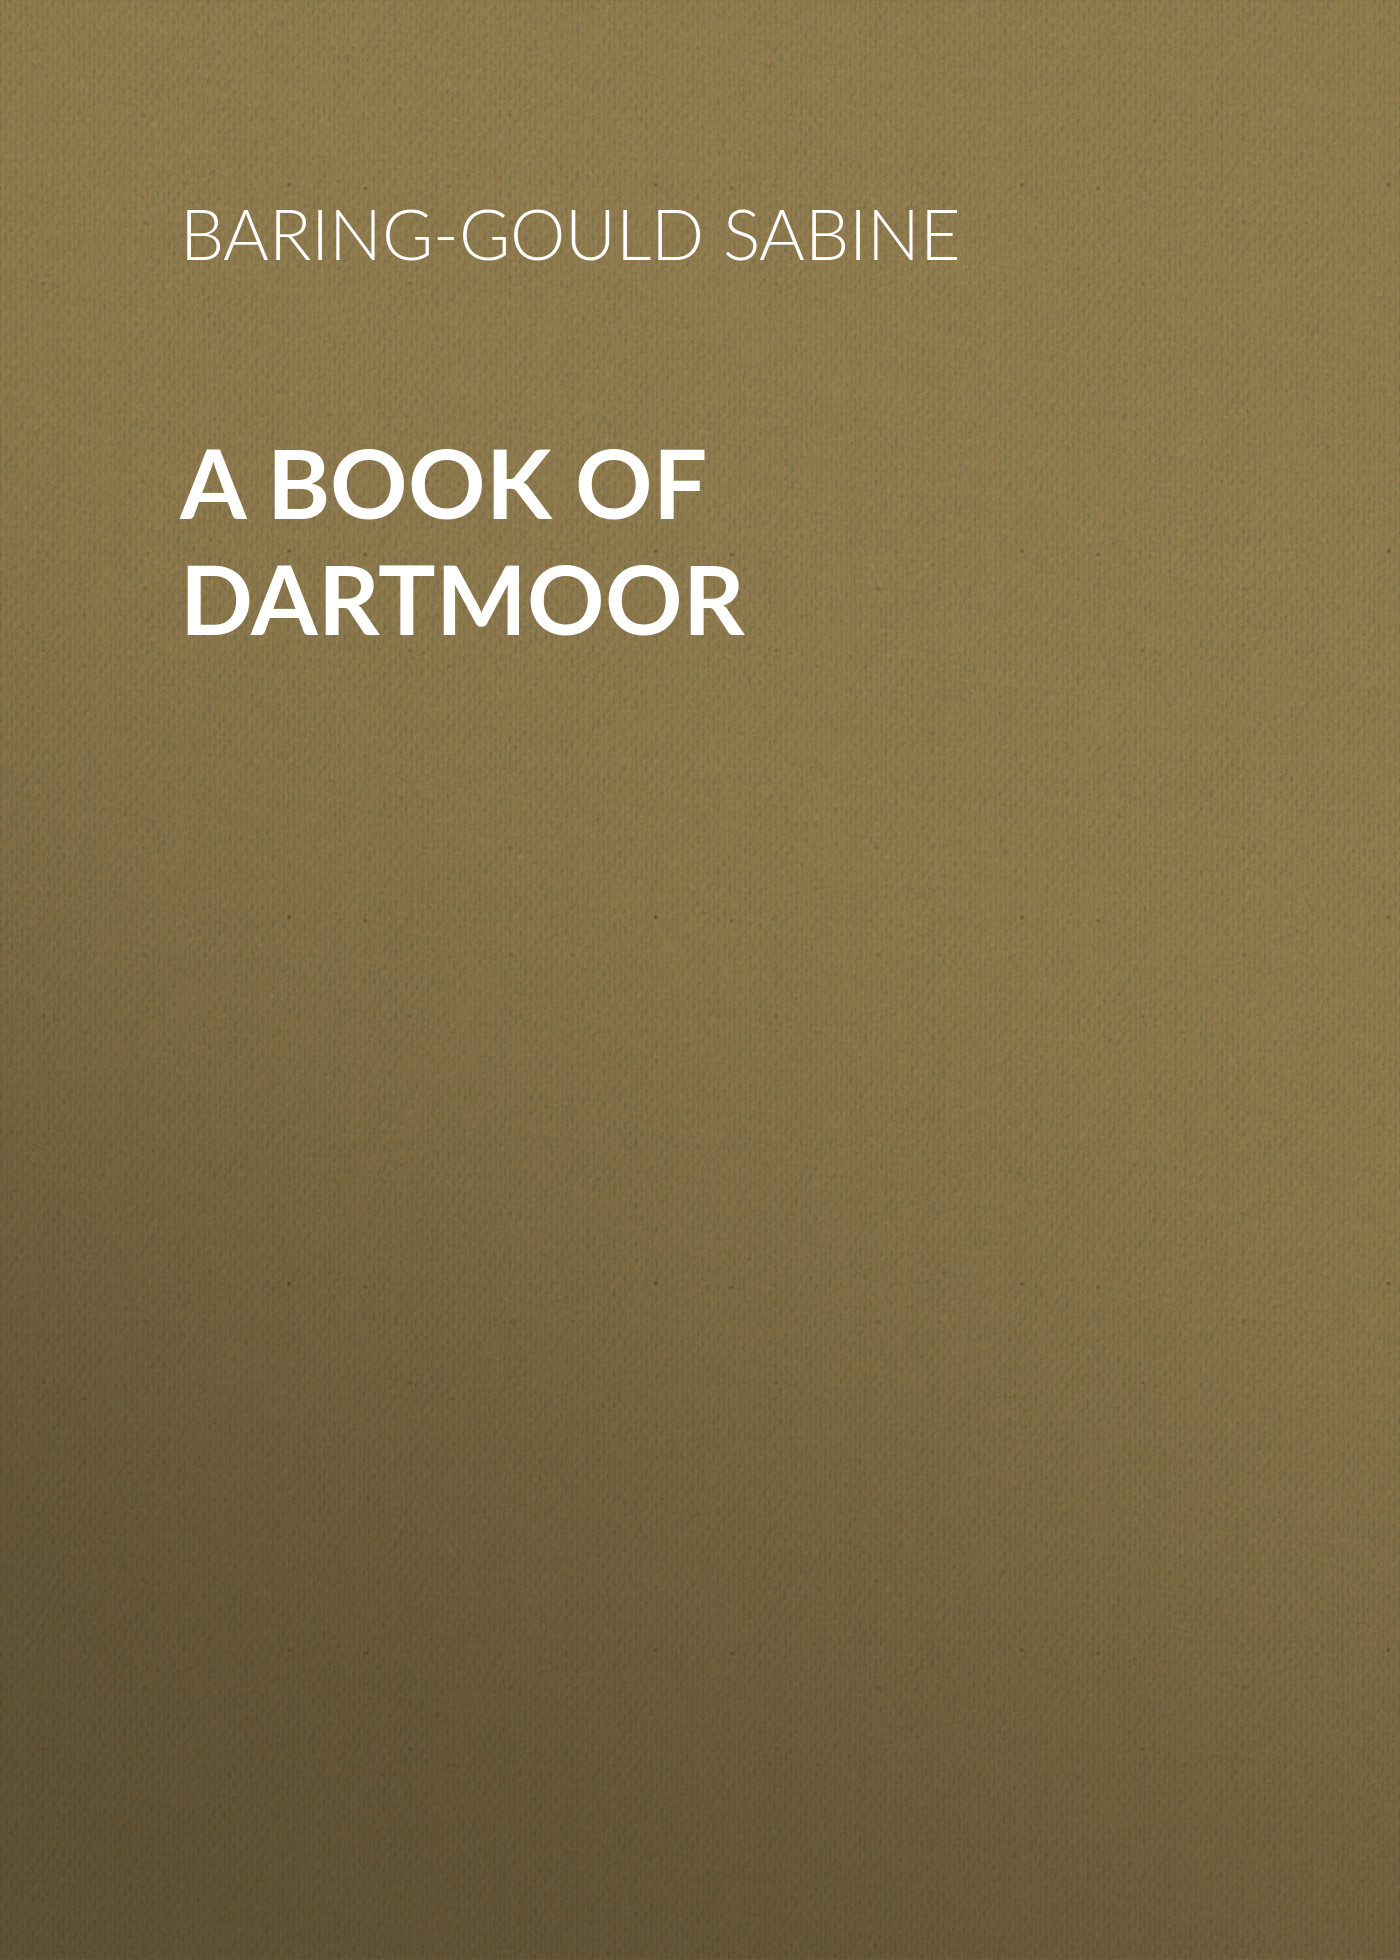 Baring-Gould Sabine A Book of Dartmoor baring gould sabine a book of the pyrenees